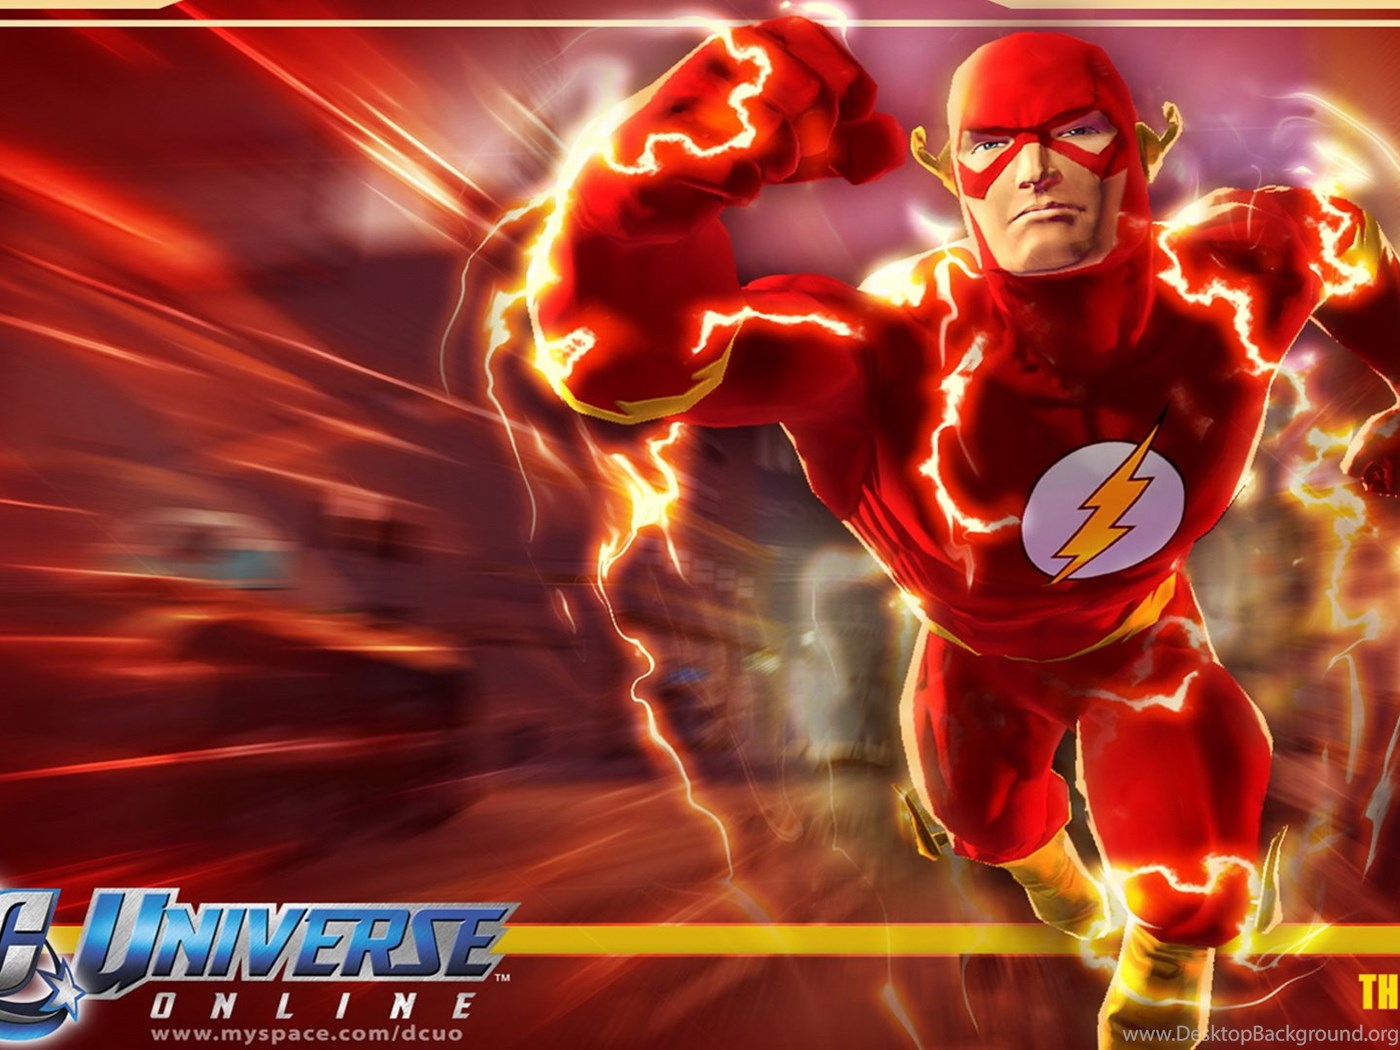 Game Hd Wallpapers Video Games Hd 1080p Wallpapers Dcuo The Flash